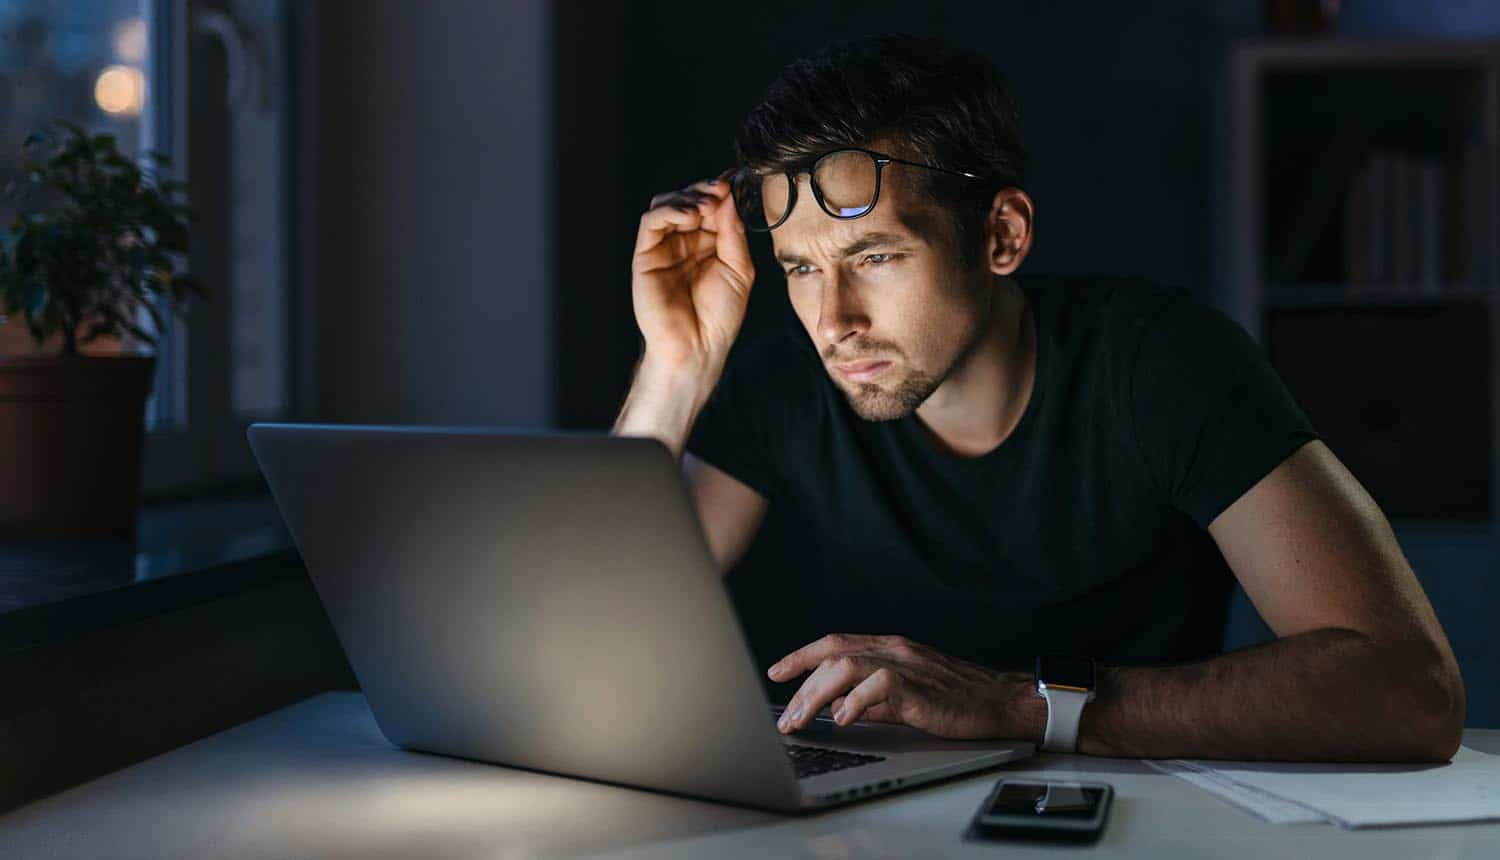 Man holding glasses while starting at laptop showing challenges of misinformation